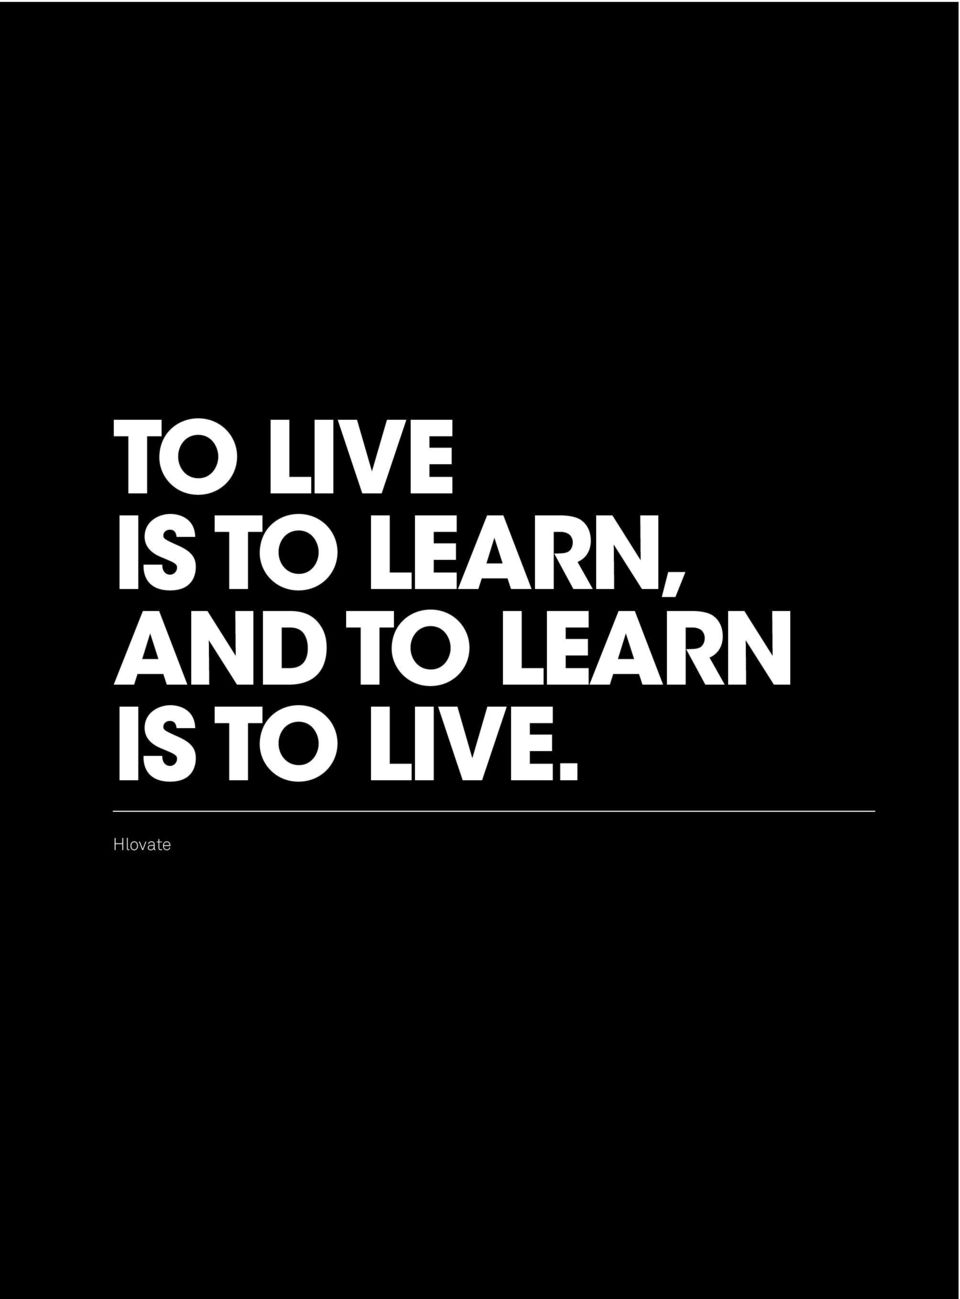 LEARN IS TO